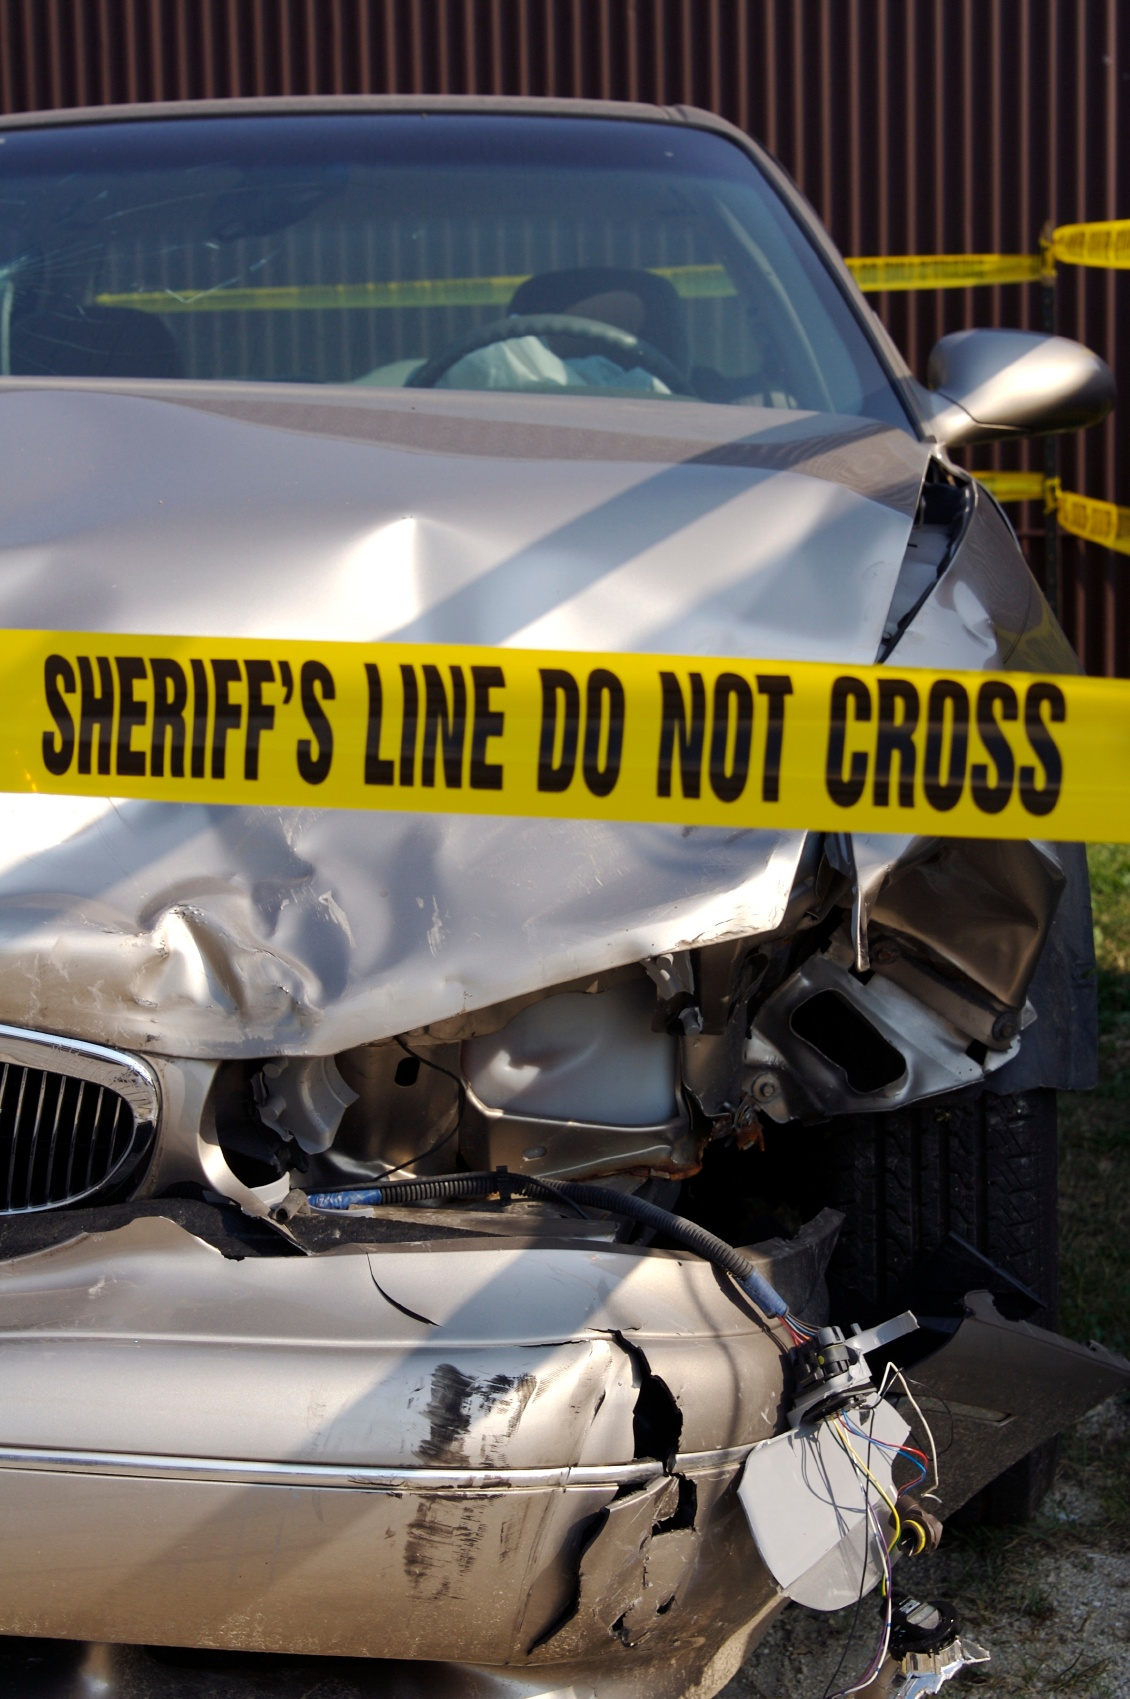 5 Reasons To Hire An Attorney After A Car Accident